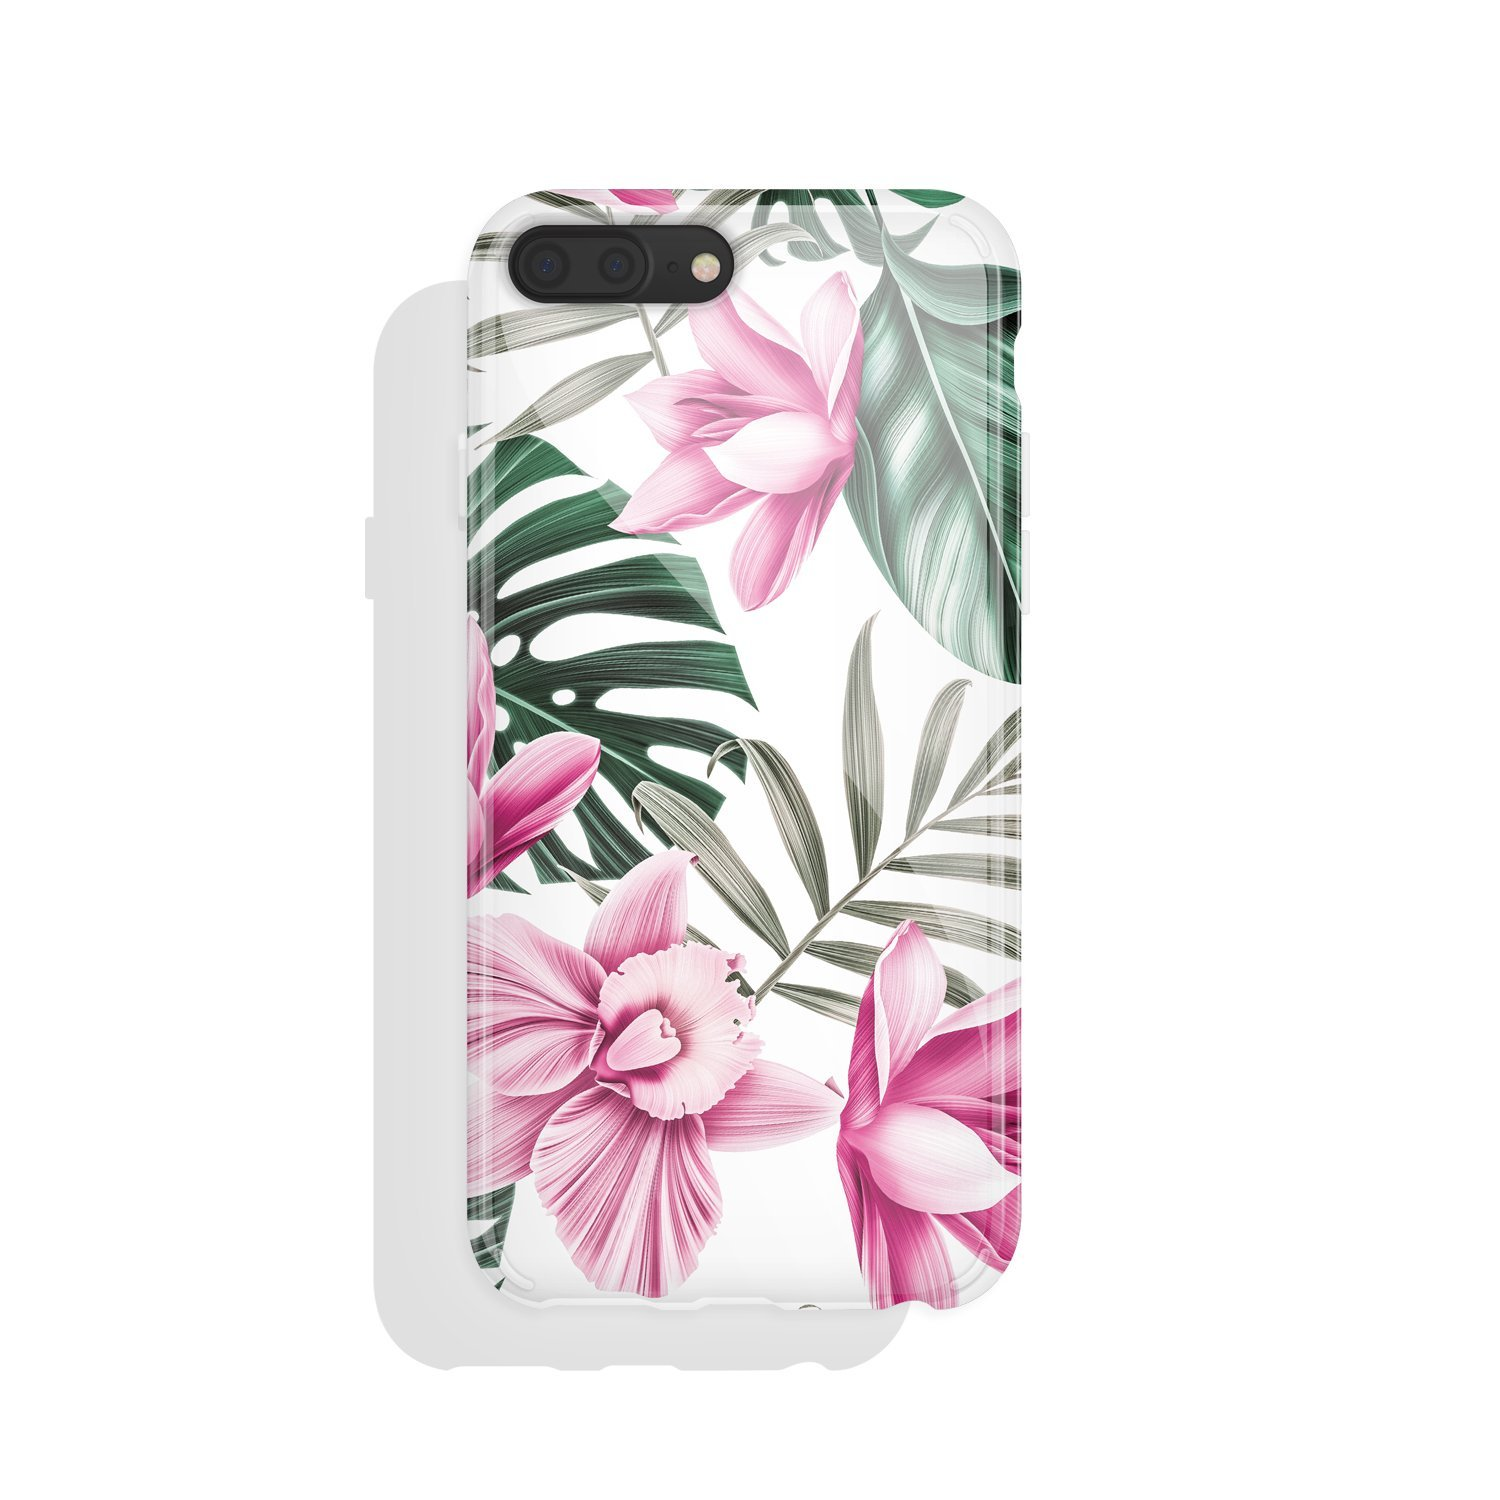 iPhone 8 plus & iPhone 7 plus Case Vintage floral, Akna Charming Series High Impact Silicon Cover with HD Graphics for iPhone 8 plus & iPhone 7 plus (101293-U.S)